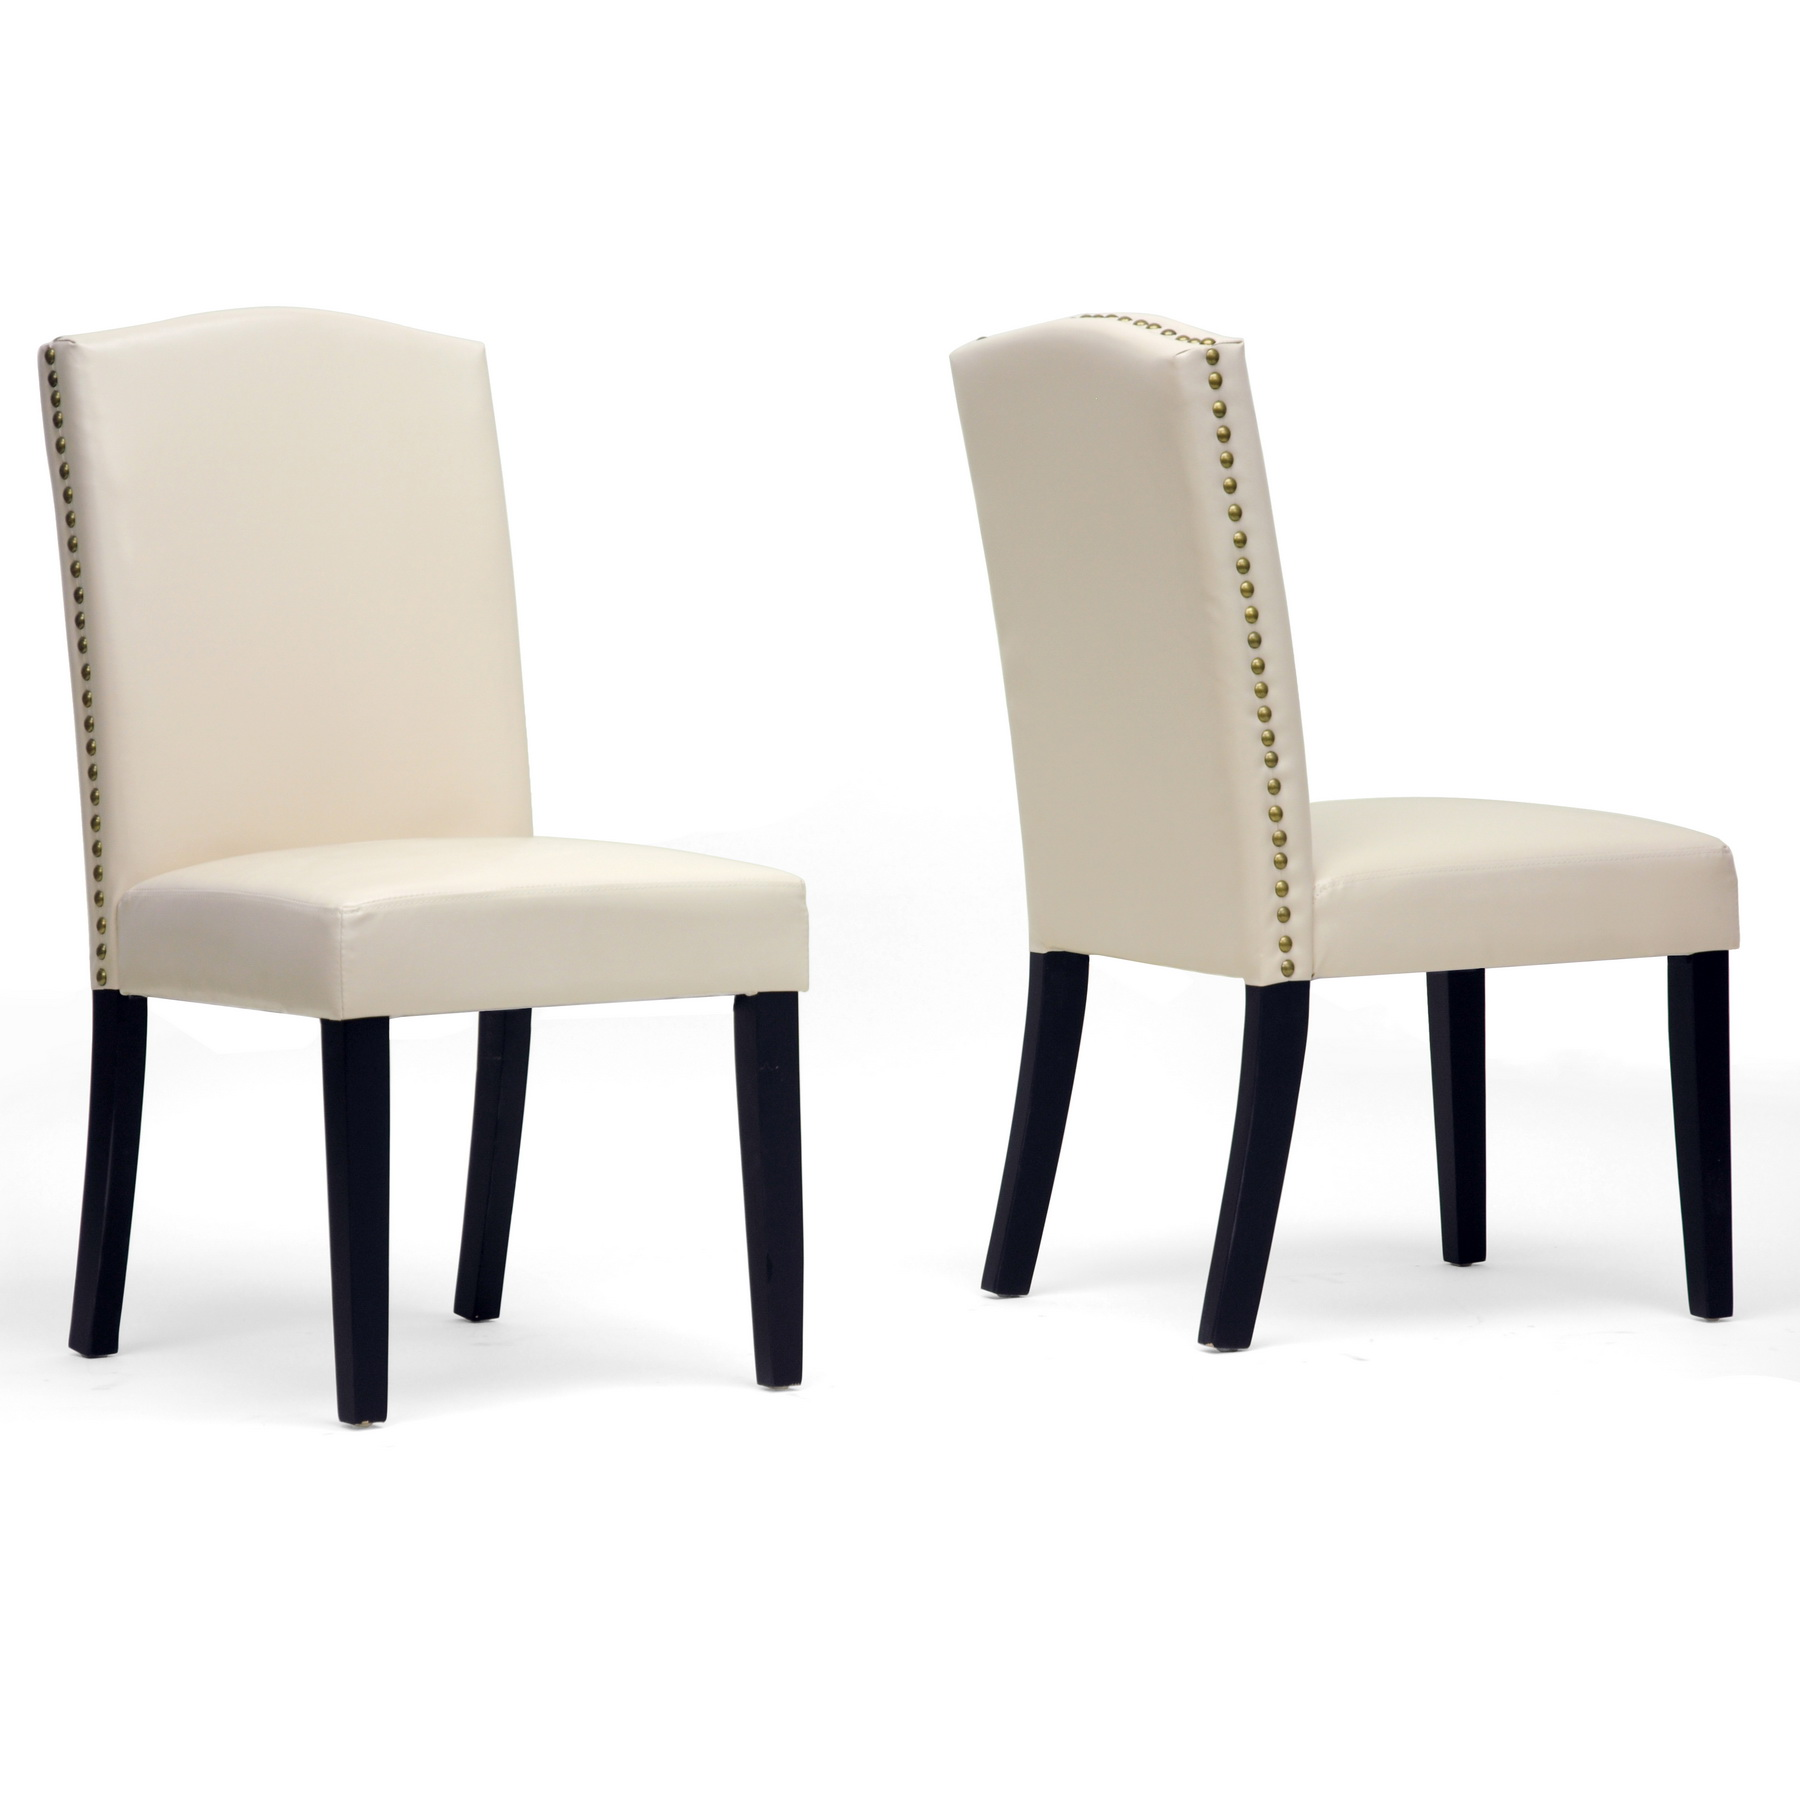 Awesome White Upholstered Leather Dining Chair Adorned With Nailheads For Striking Home Ideas